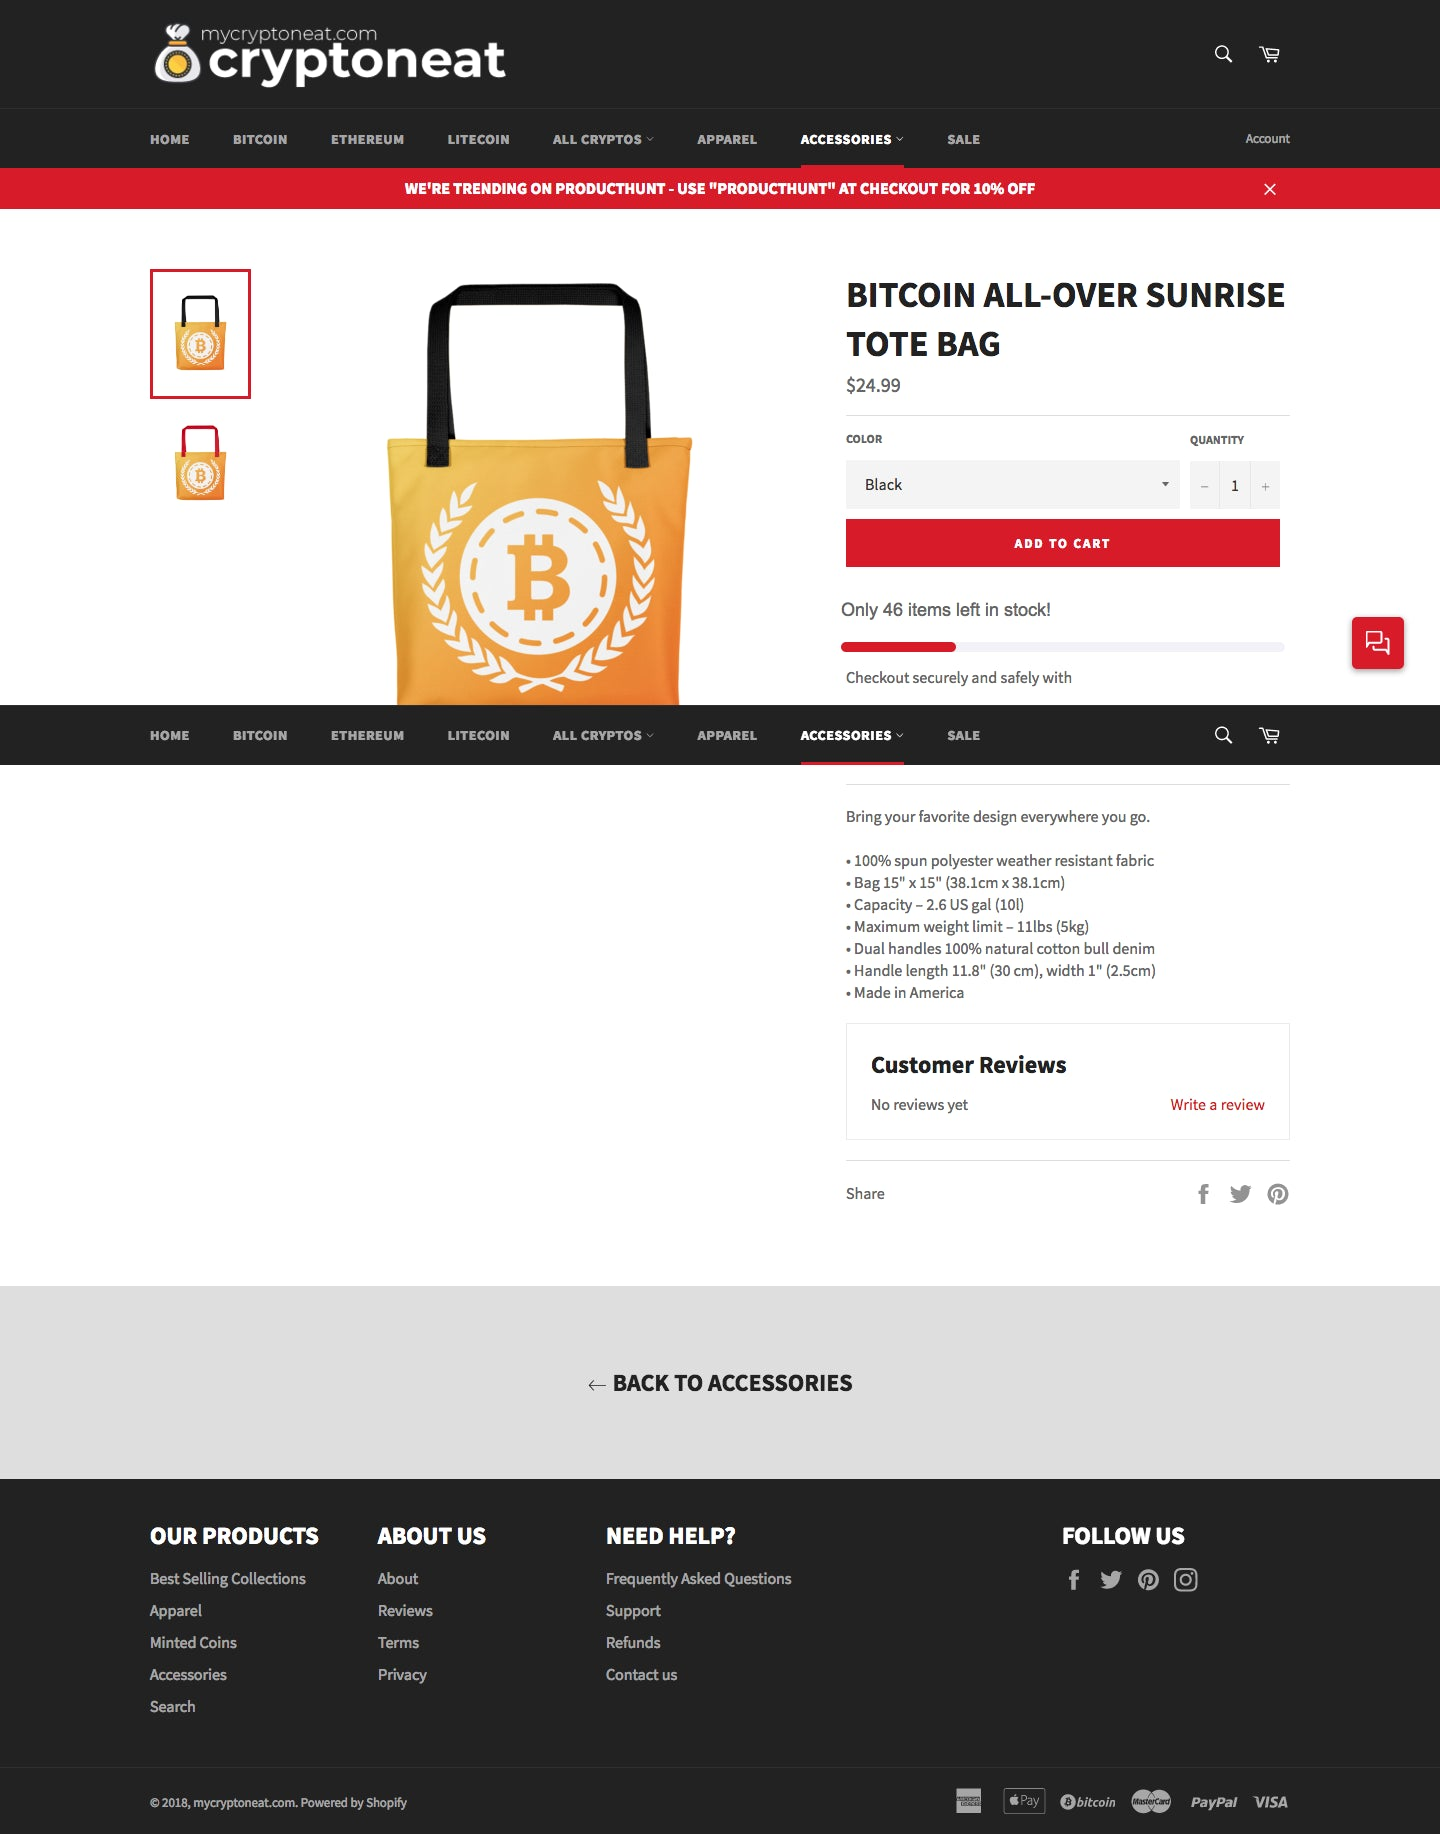 MyCryptoneat.com - Shop the best bitcoin t-shirts, apparel, and merch! Browse the 15 top altcoins cryptocurrency clothing (ETH, LTC, XRP, XLM,...). Screenshot - 2